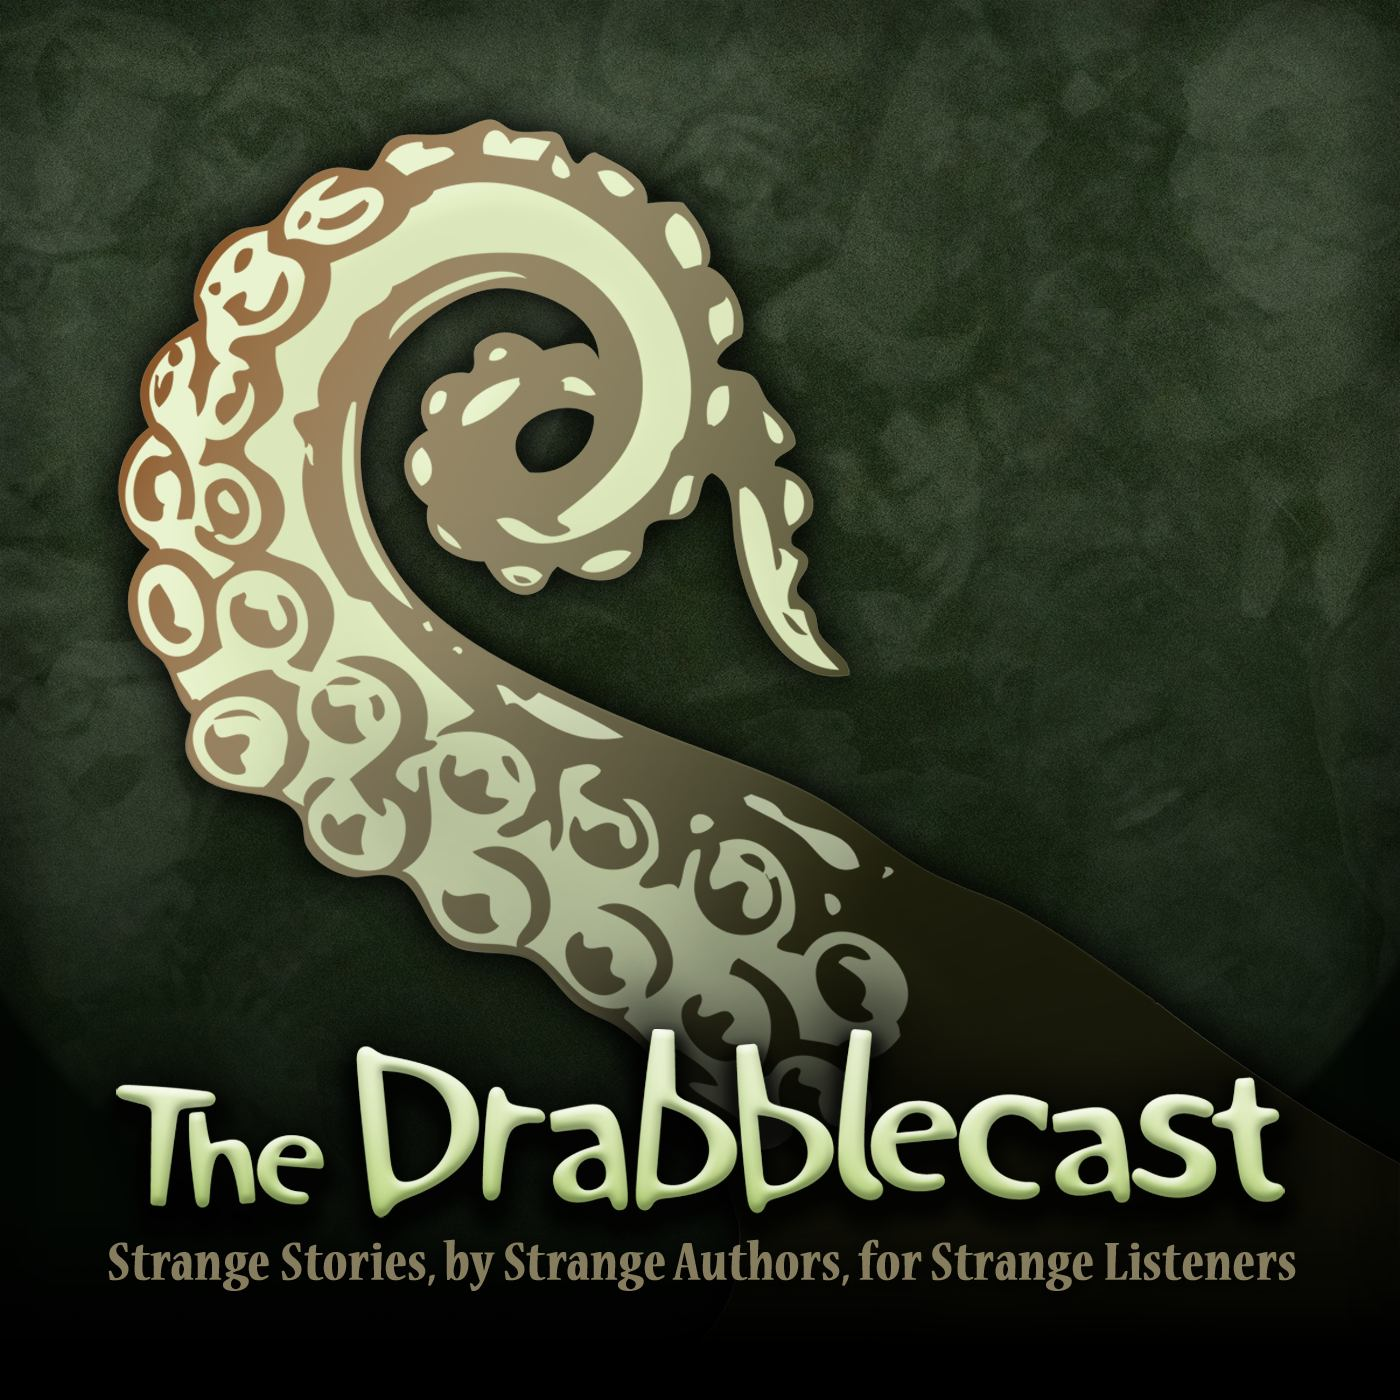 The Drabblecast Audio Fiction Podcast